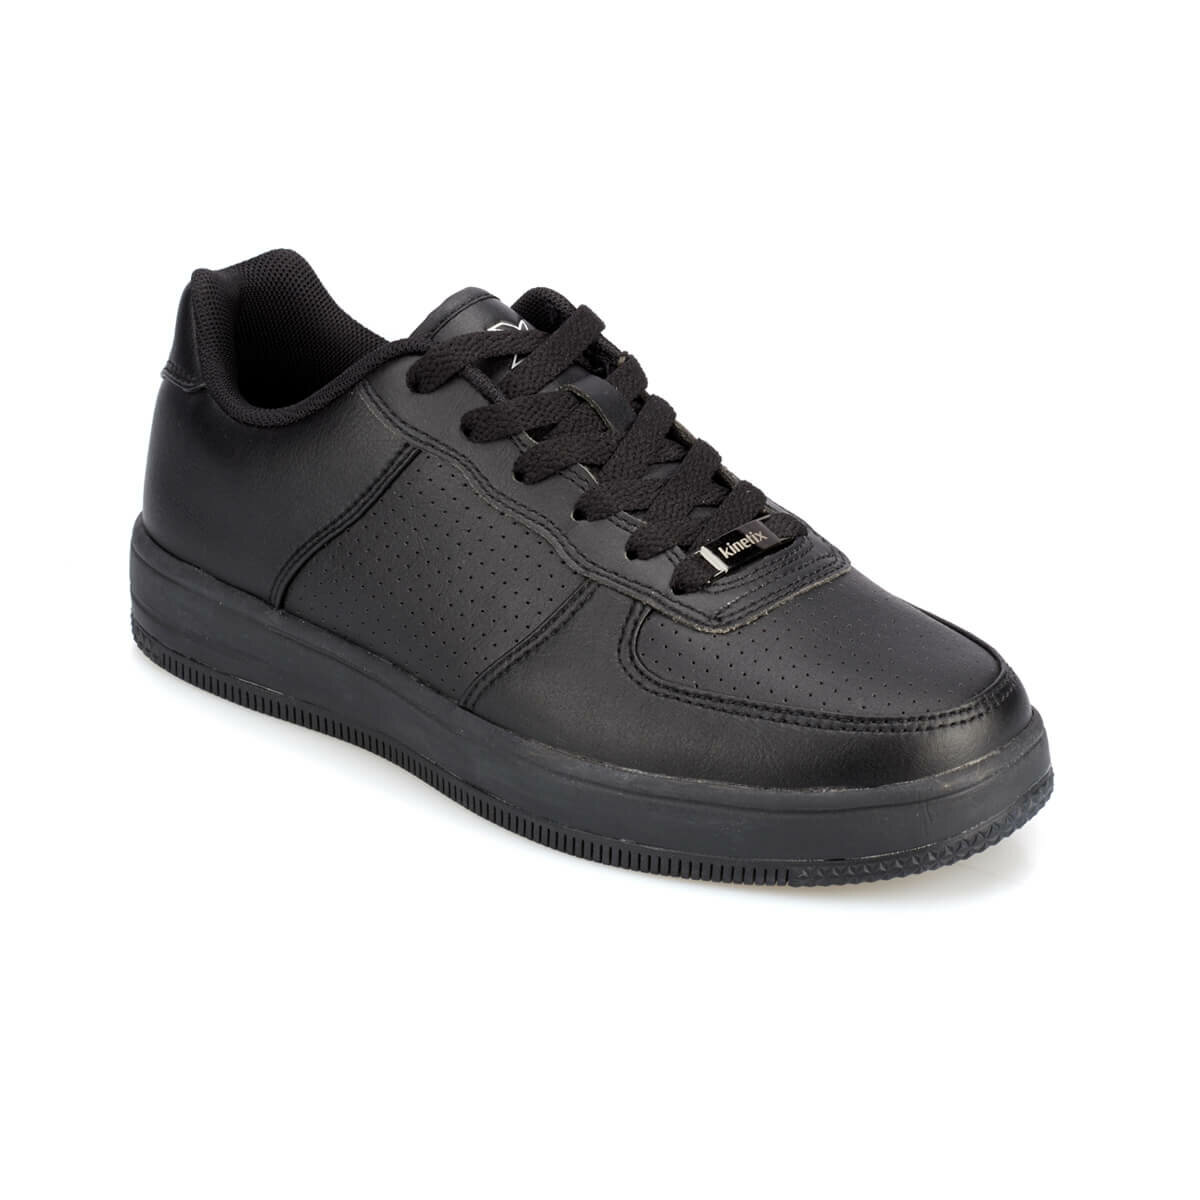 FLO ABELLA Black Women 'S Sneaker Shoes KINETIX